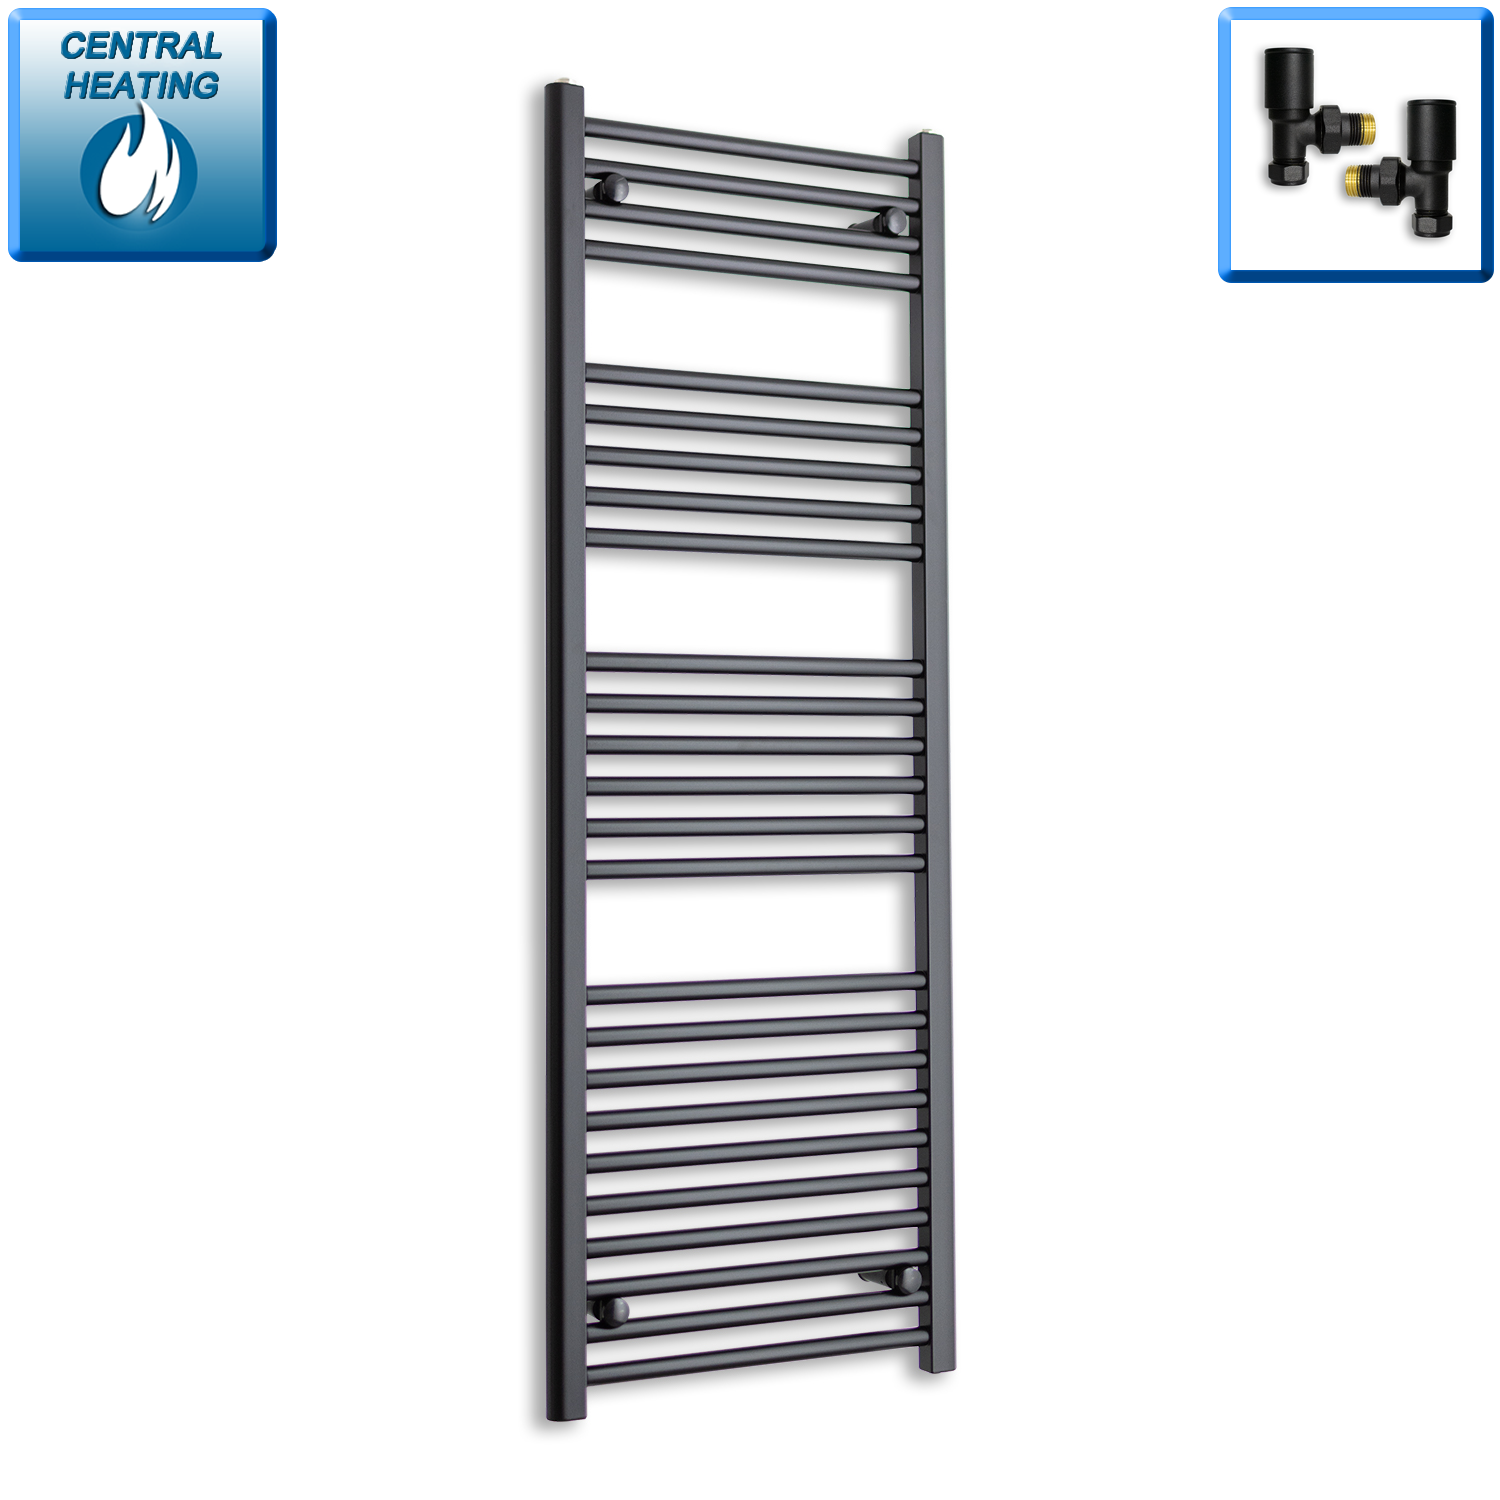 500mm Wide 1400mm High Black Towel Rail Radiator With Angled Valve